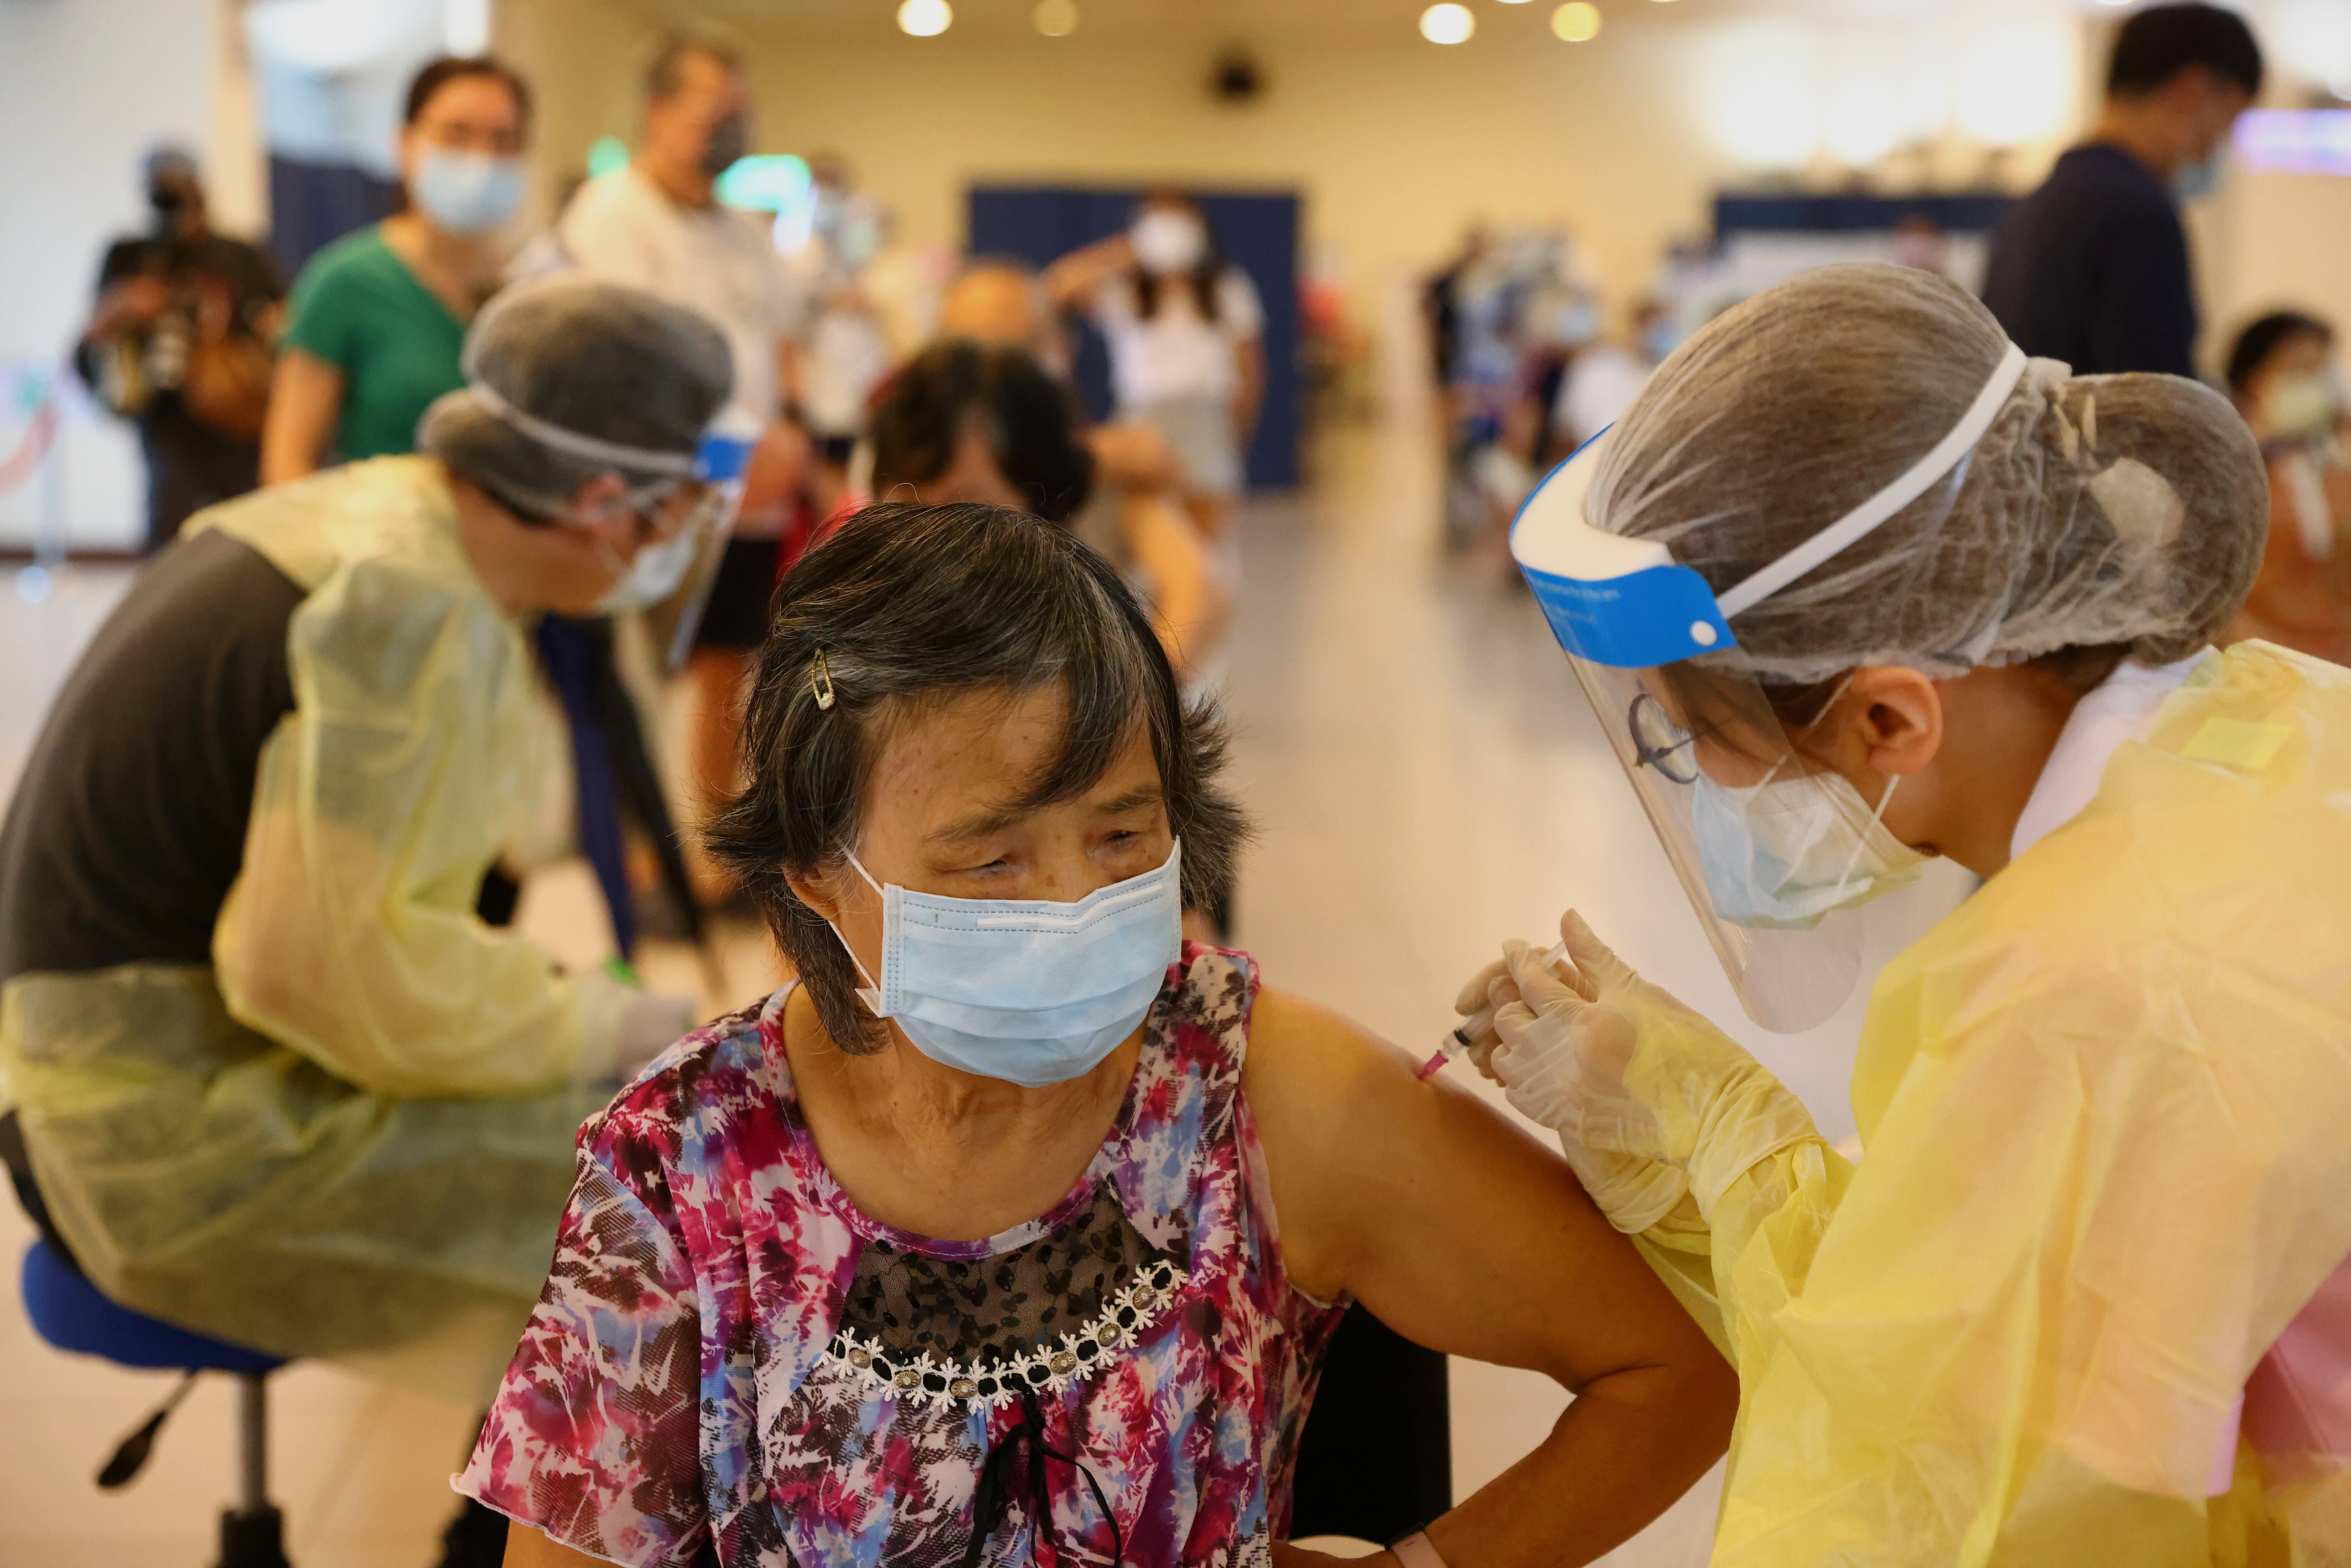 A medical worker administers a dose of the AstraZeneca vaccine against the coronavirus disease (COVID-19) to a woman during a vaccination session for elderly people over 75 years old, at a stadium in New Taipei City, Taiwan June 25, 2021. REUTERS/Ann Wang